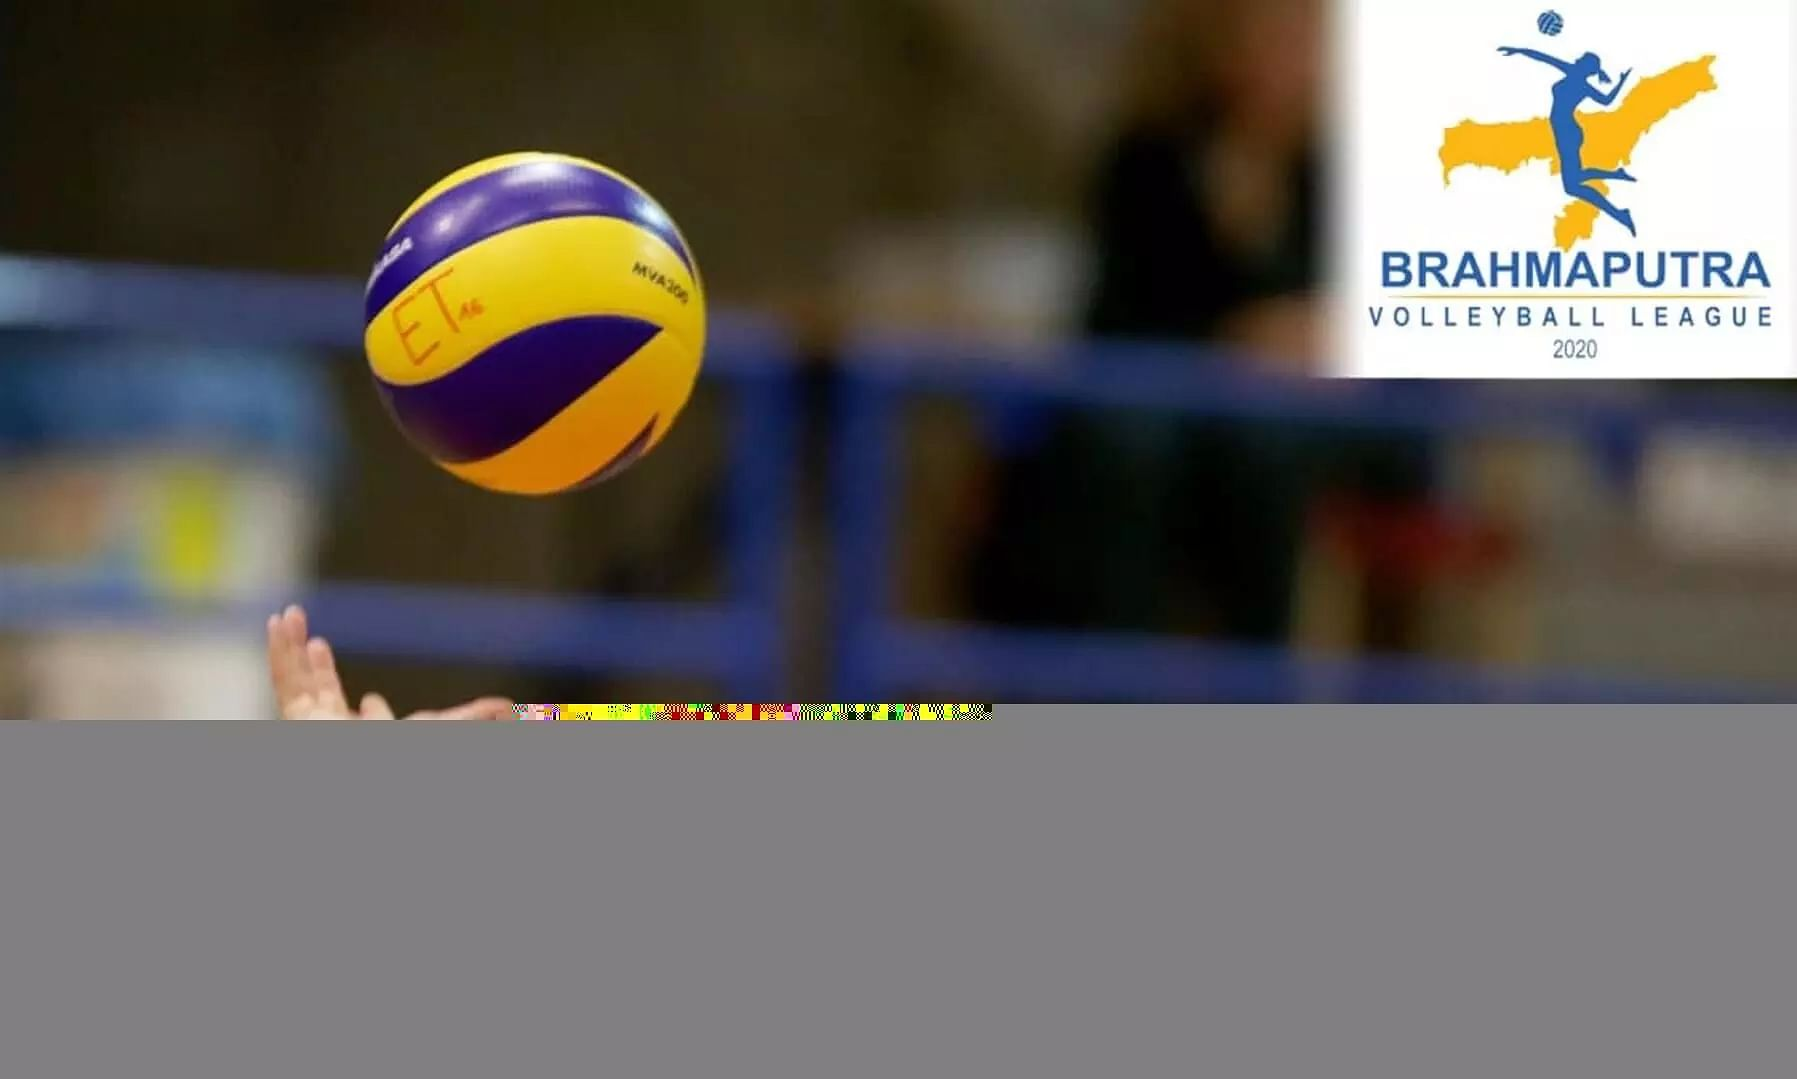 The story behind Brahmaputra Volleyball League